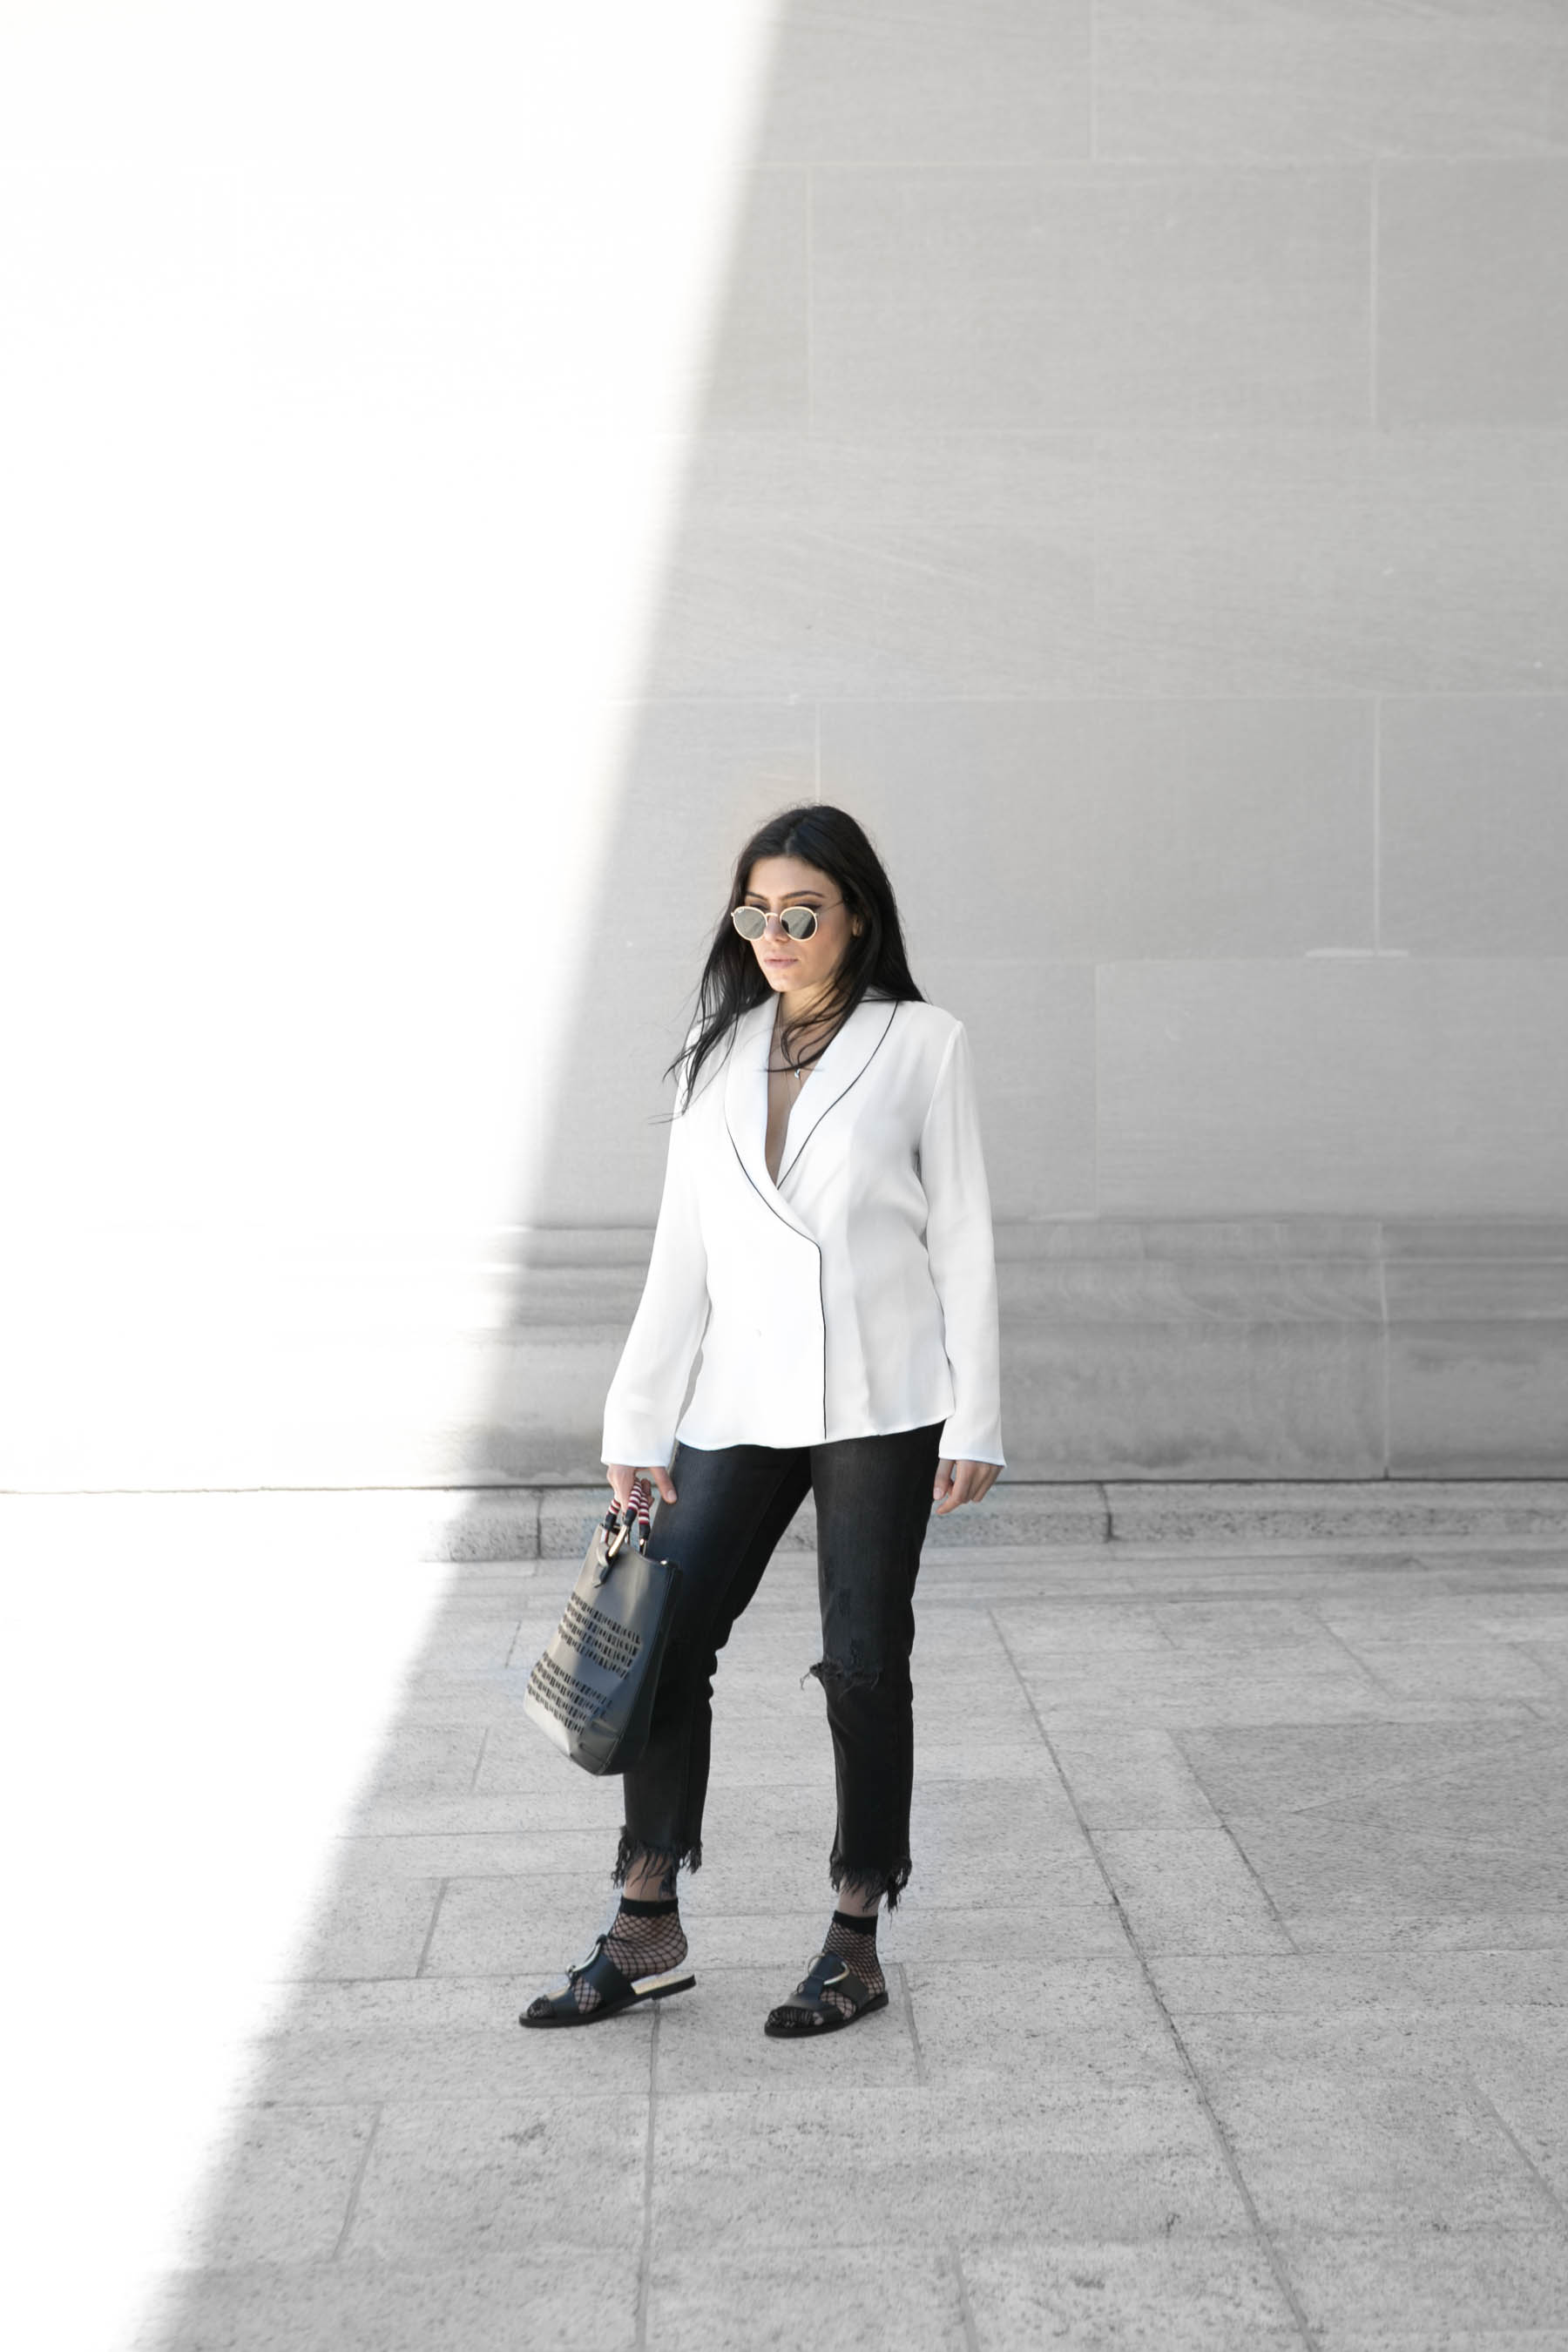 Black and whit outfit, ripped jeans, blazer top